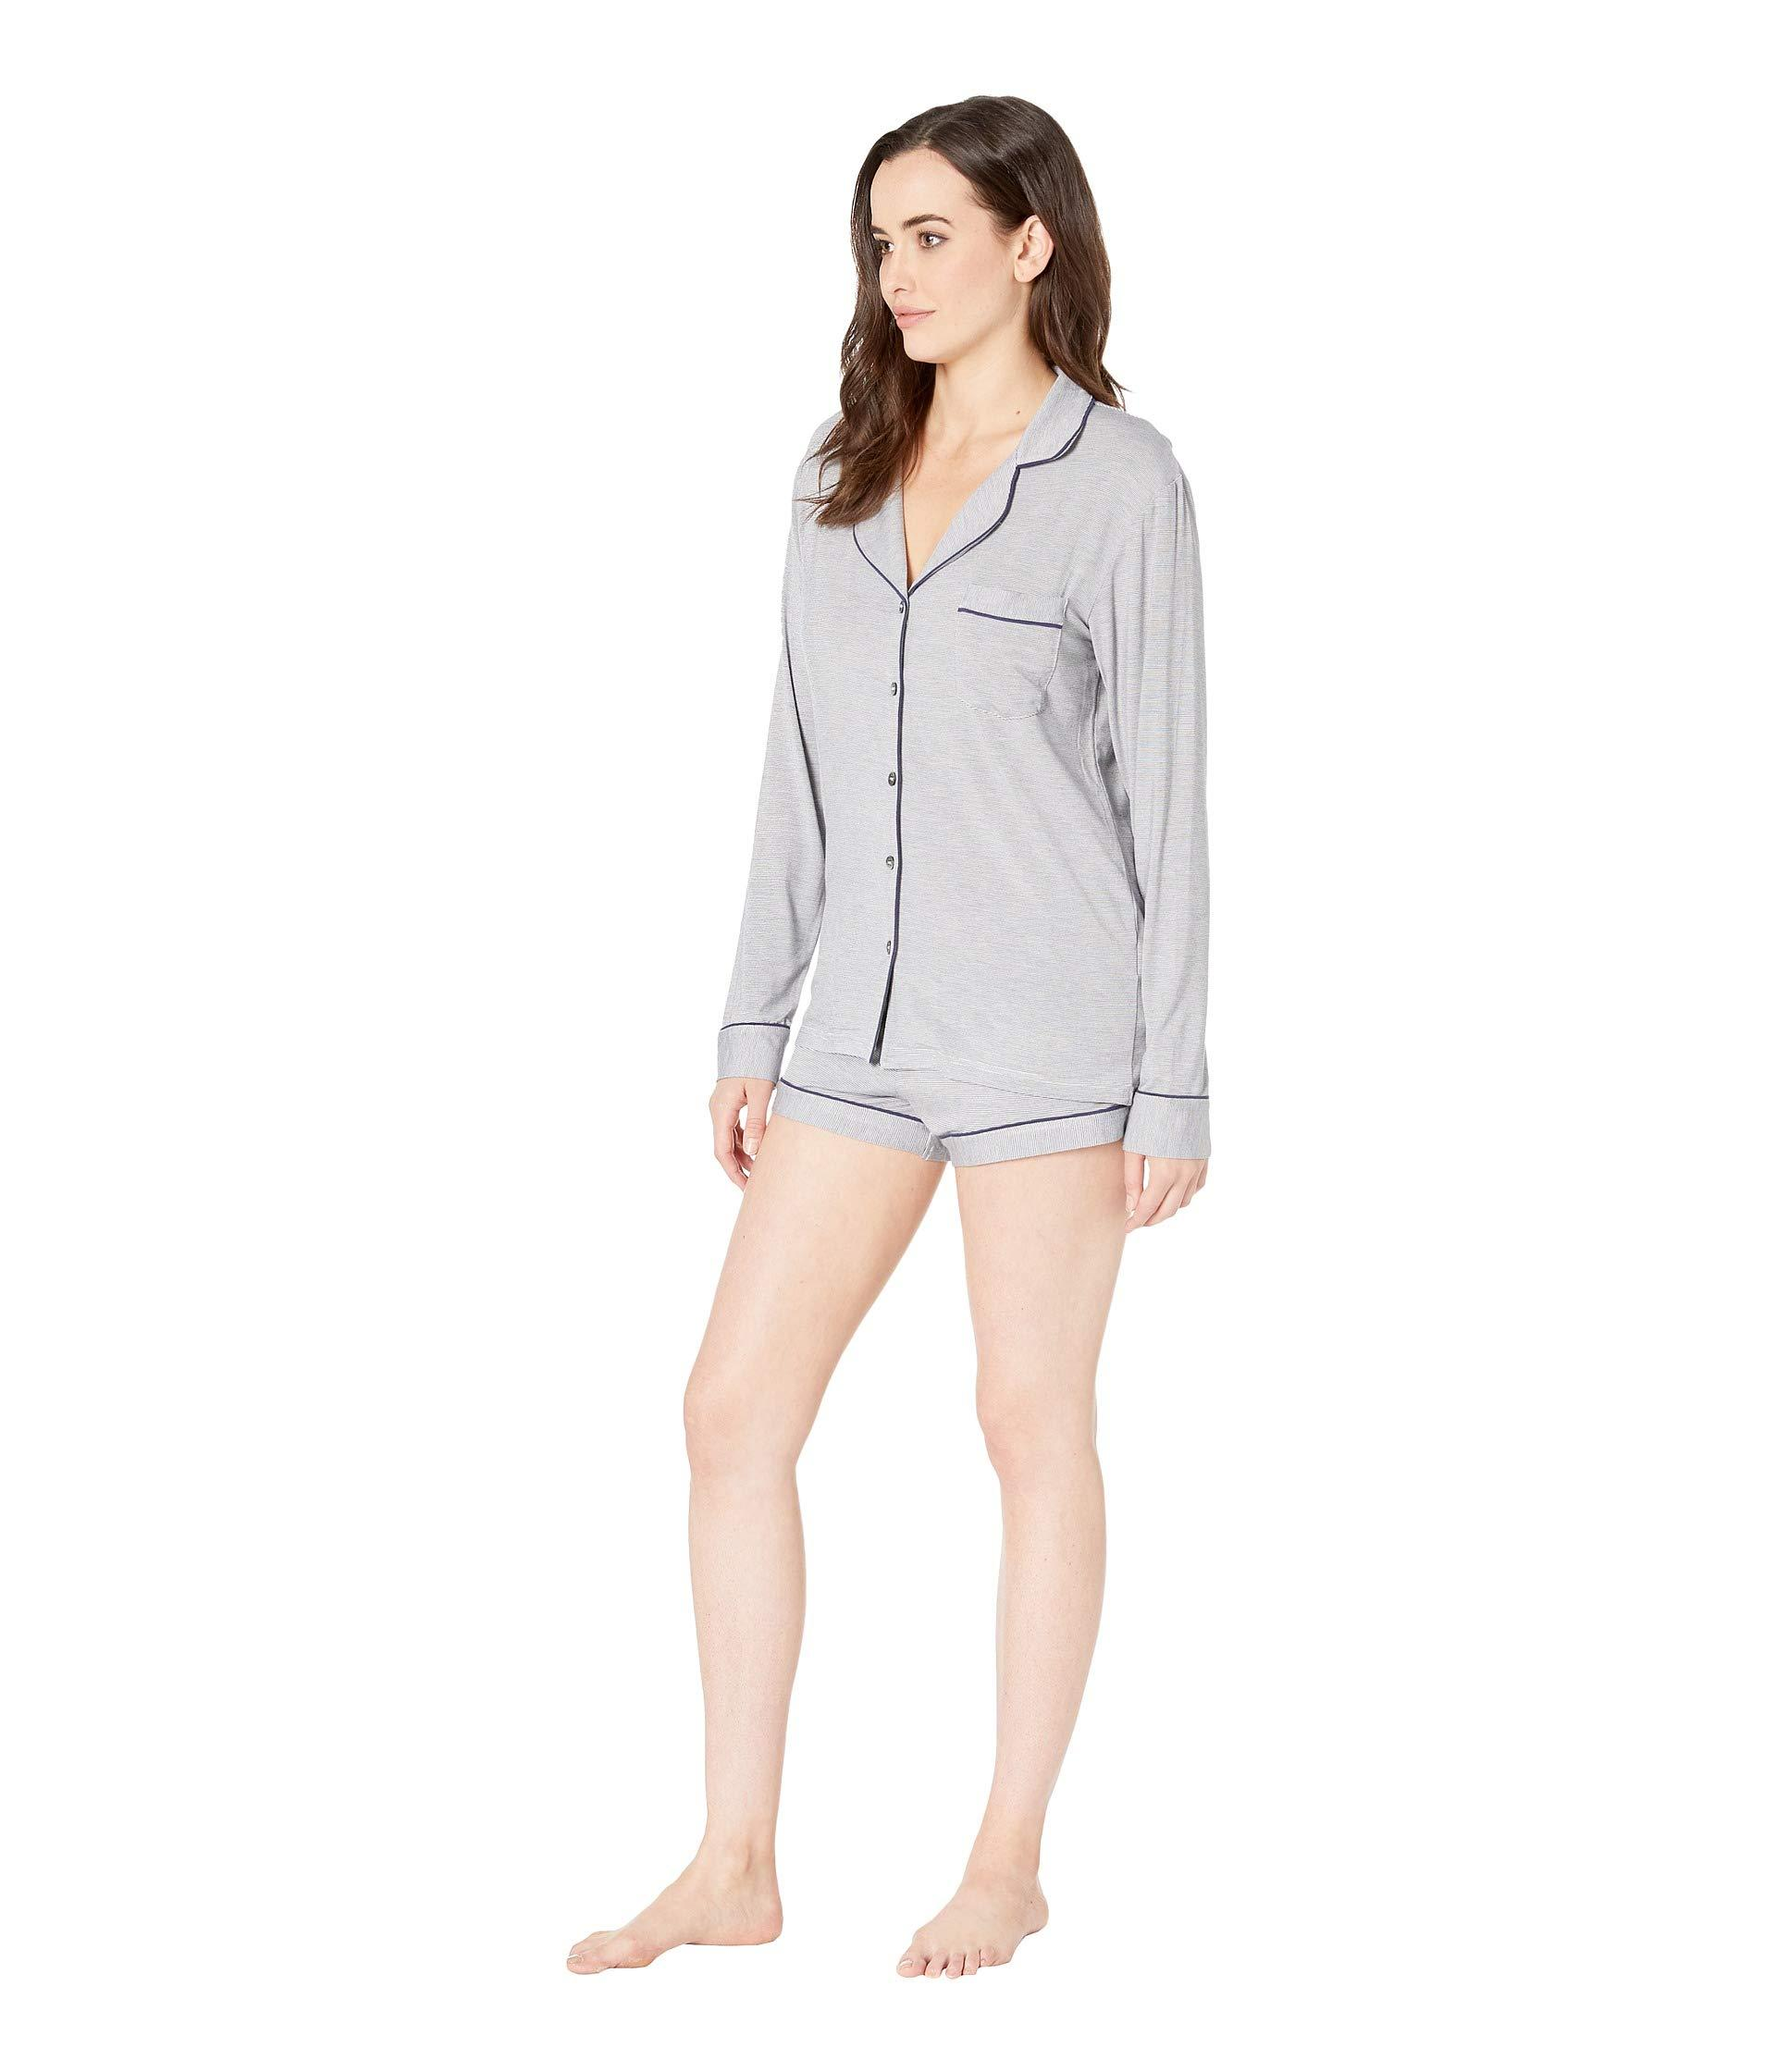 57e0036f1c9 Lyst - UGG Nya Set Mini Stripe Shorts Set (navy cream) Women s Pajama Sets  in Blue